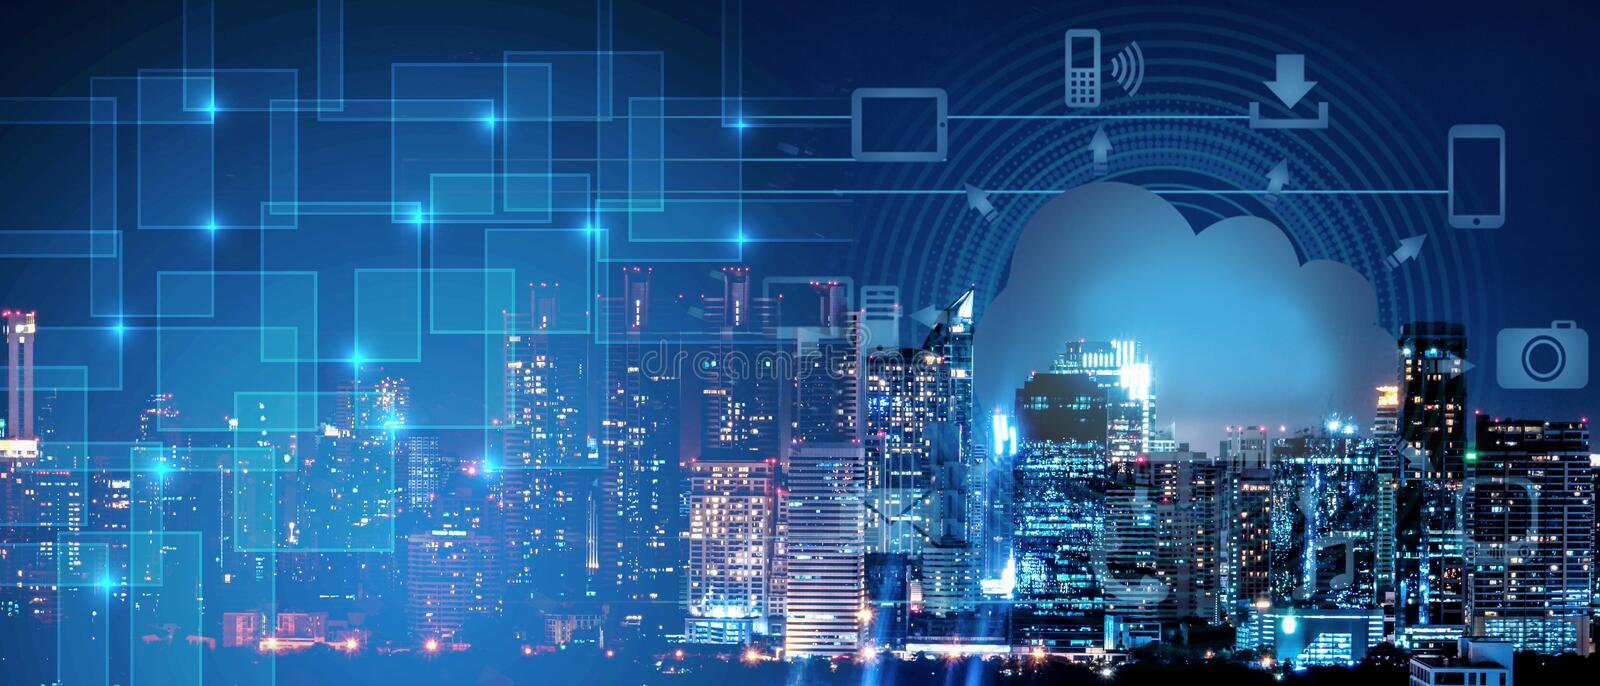 Background of smart city intelligence networking on clound technology, night cityscape with digital and cloud technology sign and stock photo